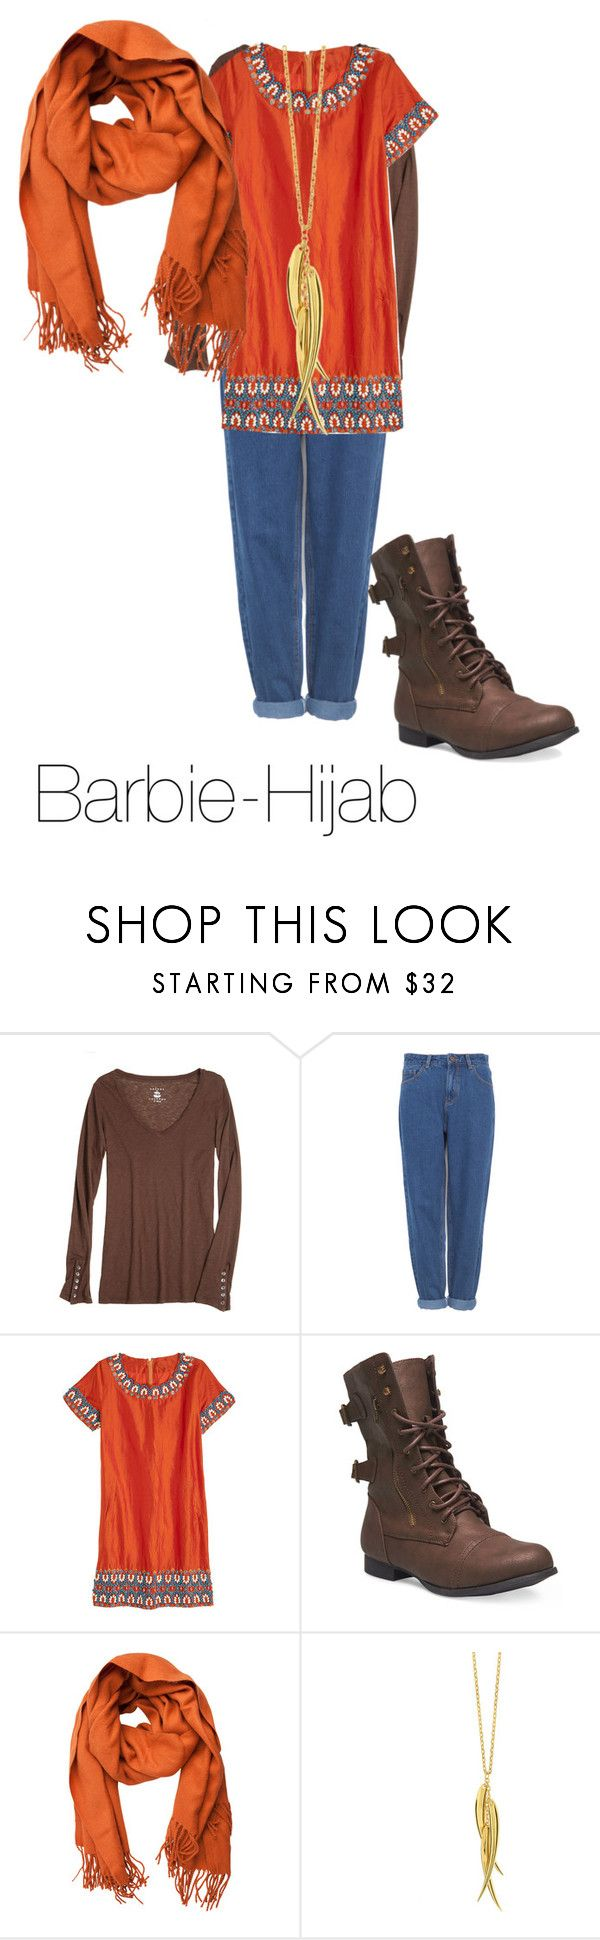 """""""Hijab outfit #6"""" by barbie-hijab ❤ liked on Polyvore featuring Velvet, Pull&Bear, Calypso St. Barth, Wet Seal, Pieces and Dinny Hall"""